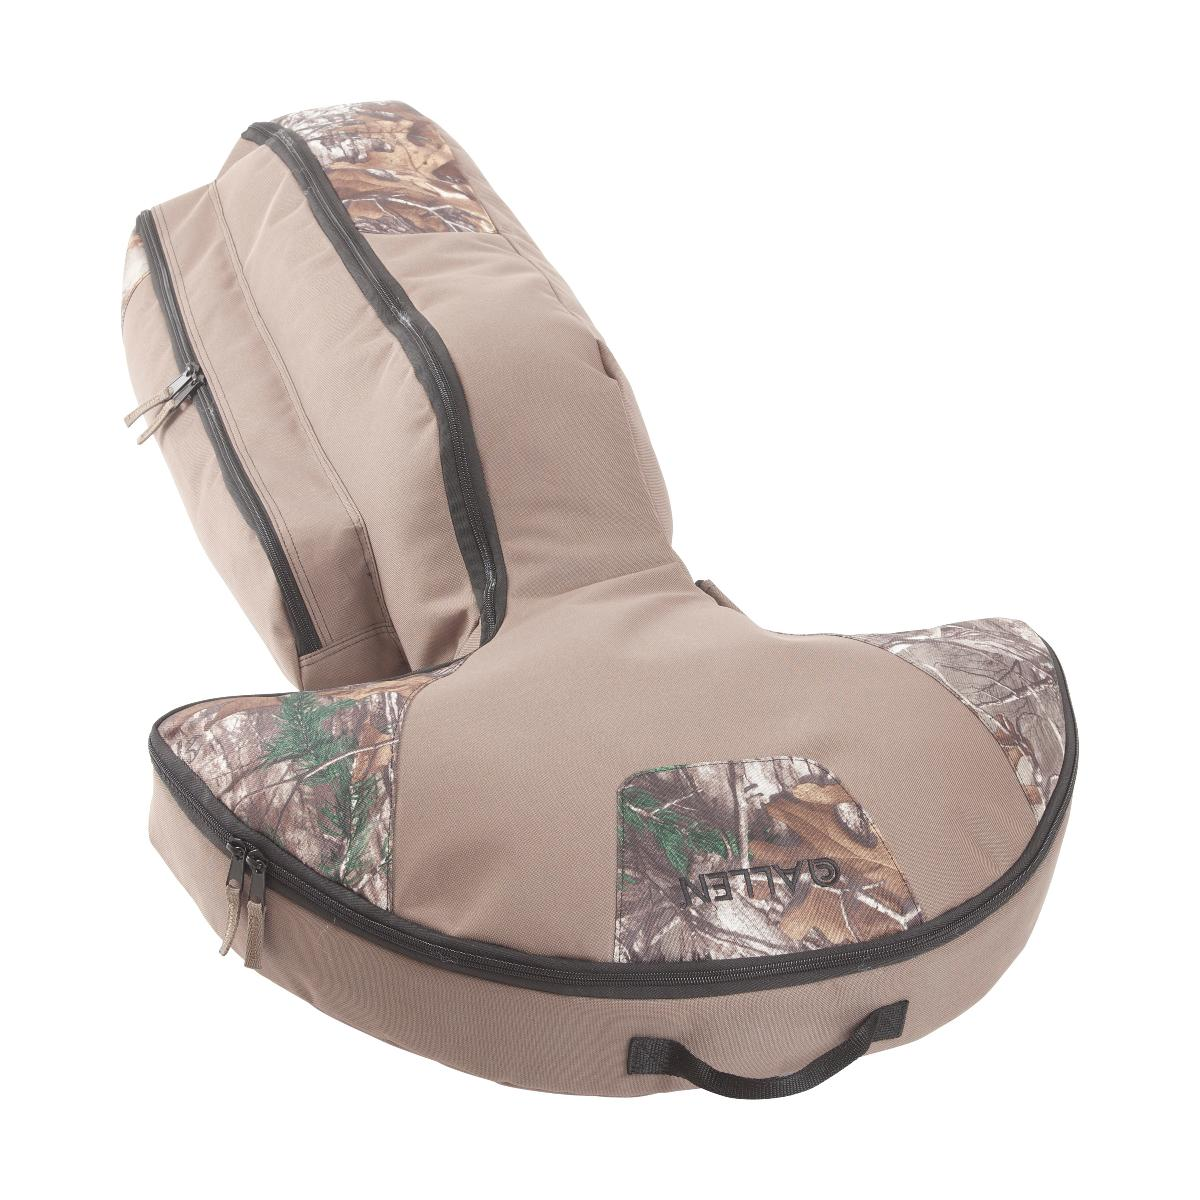 "Allen 25"" Force Compact Crossbow Case, Brown/Realtree Xtra"